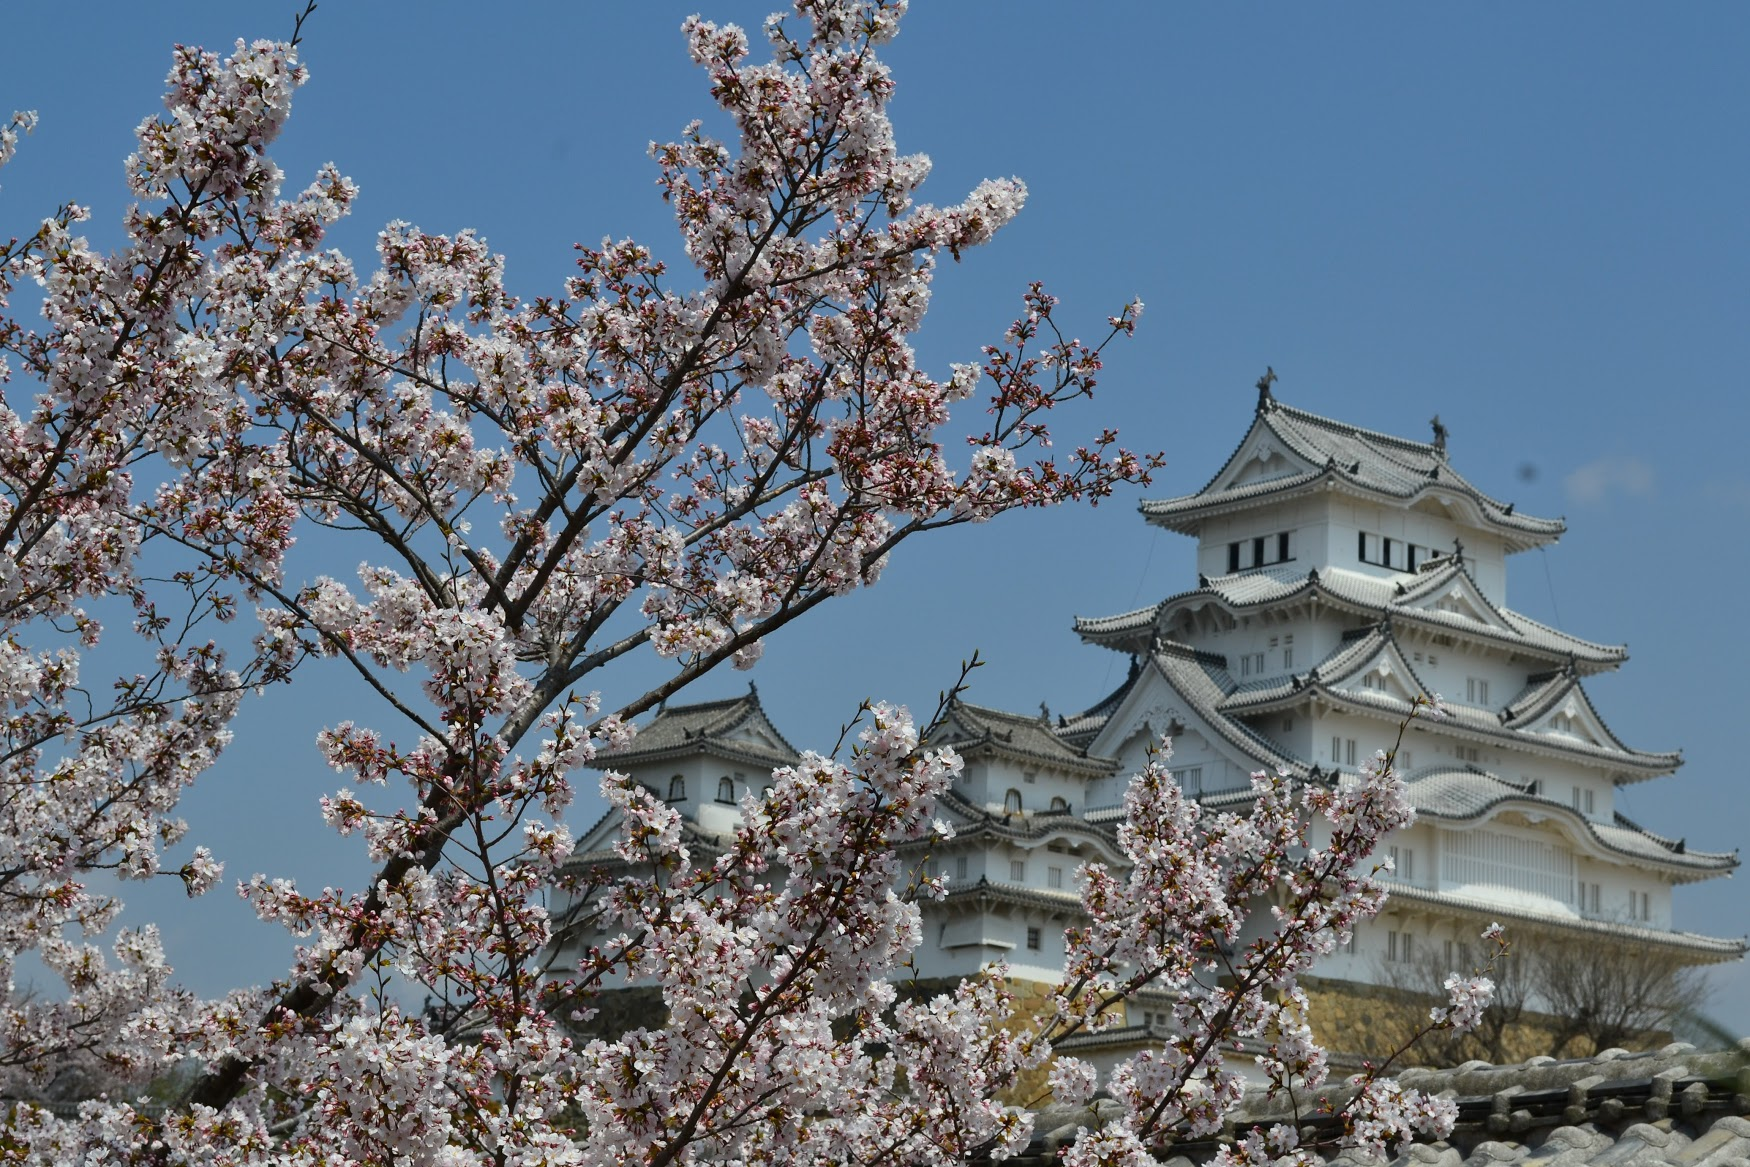 There is a lovely park full of cherry blossoms next to Himeji Castles and I was able to snap a ton of lovely shots of the castle with the flowers on the foreground.